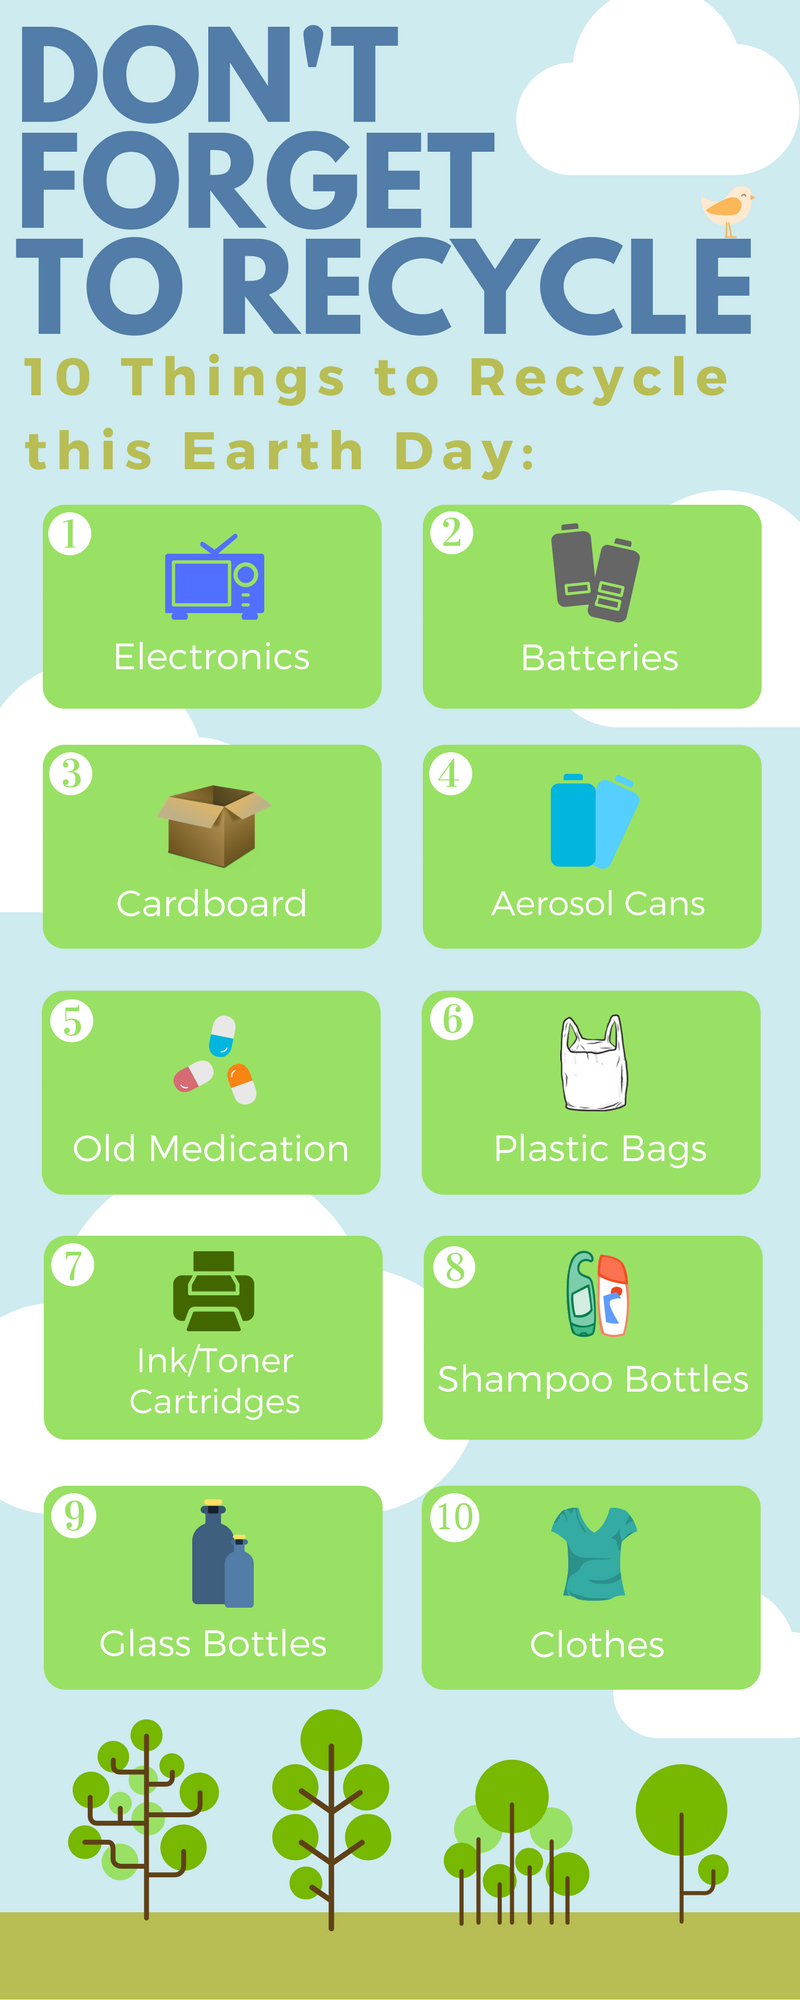 ten items people commonly forget to recycle are electronics, batteries, cardboard, aerosol cans, old medication, plastic bags, ink and toner cartridges, shampoo bottles, glass bottles, and clothes